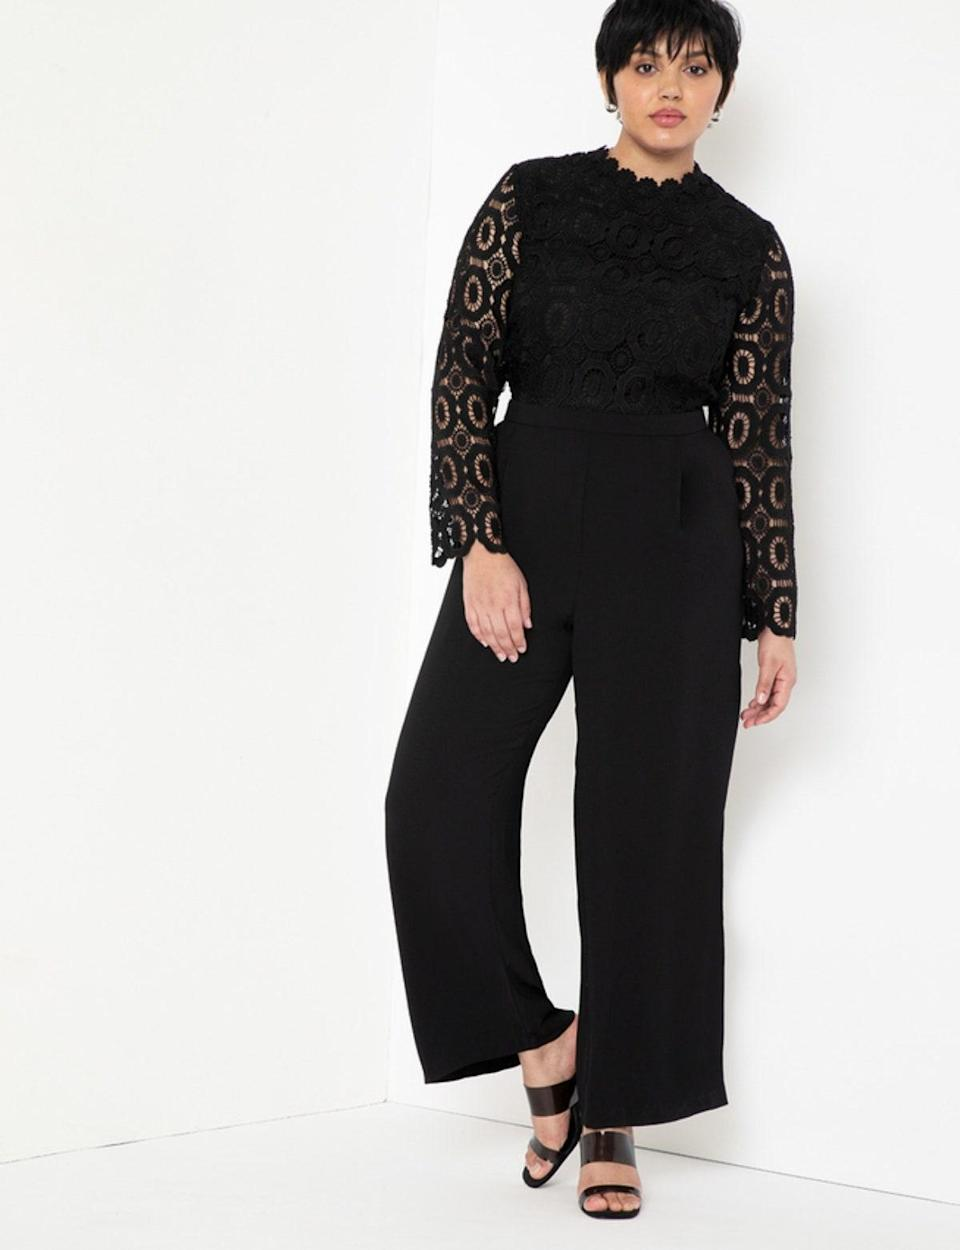 """If the aforementioned 24 dresses didn't hit, try a black lace jumpsuit. Not only does the one-and-done style transcend seasonal trends, but it's also one of those pieces you'll enjoy for years to come. Plus, the wide leg <em>guarantees</em> a dramatic stroll to the cheese station. $150, Eloquii. <a href=""""https://www.eloquii.com/lace-wide-leg-jumpsuit/1327117.html"""" rel=""""nofollow noopener"""" target=""""_blank"""" data-ylk=""""slk:Get it now!"""" class=""""link rapid-noclick-resp"""">Get it now!</a>"""